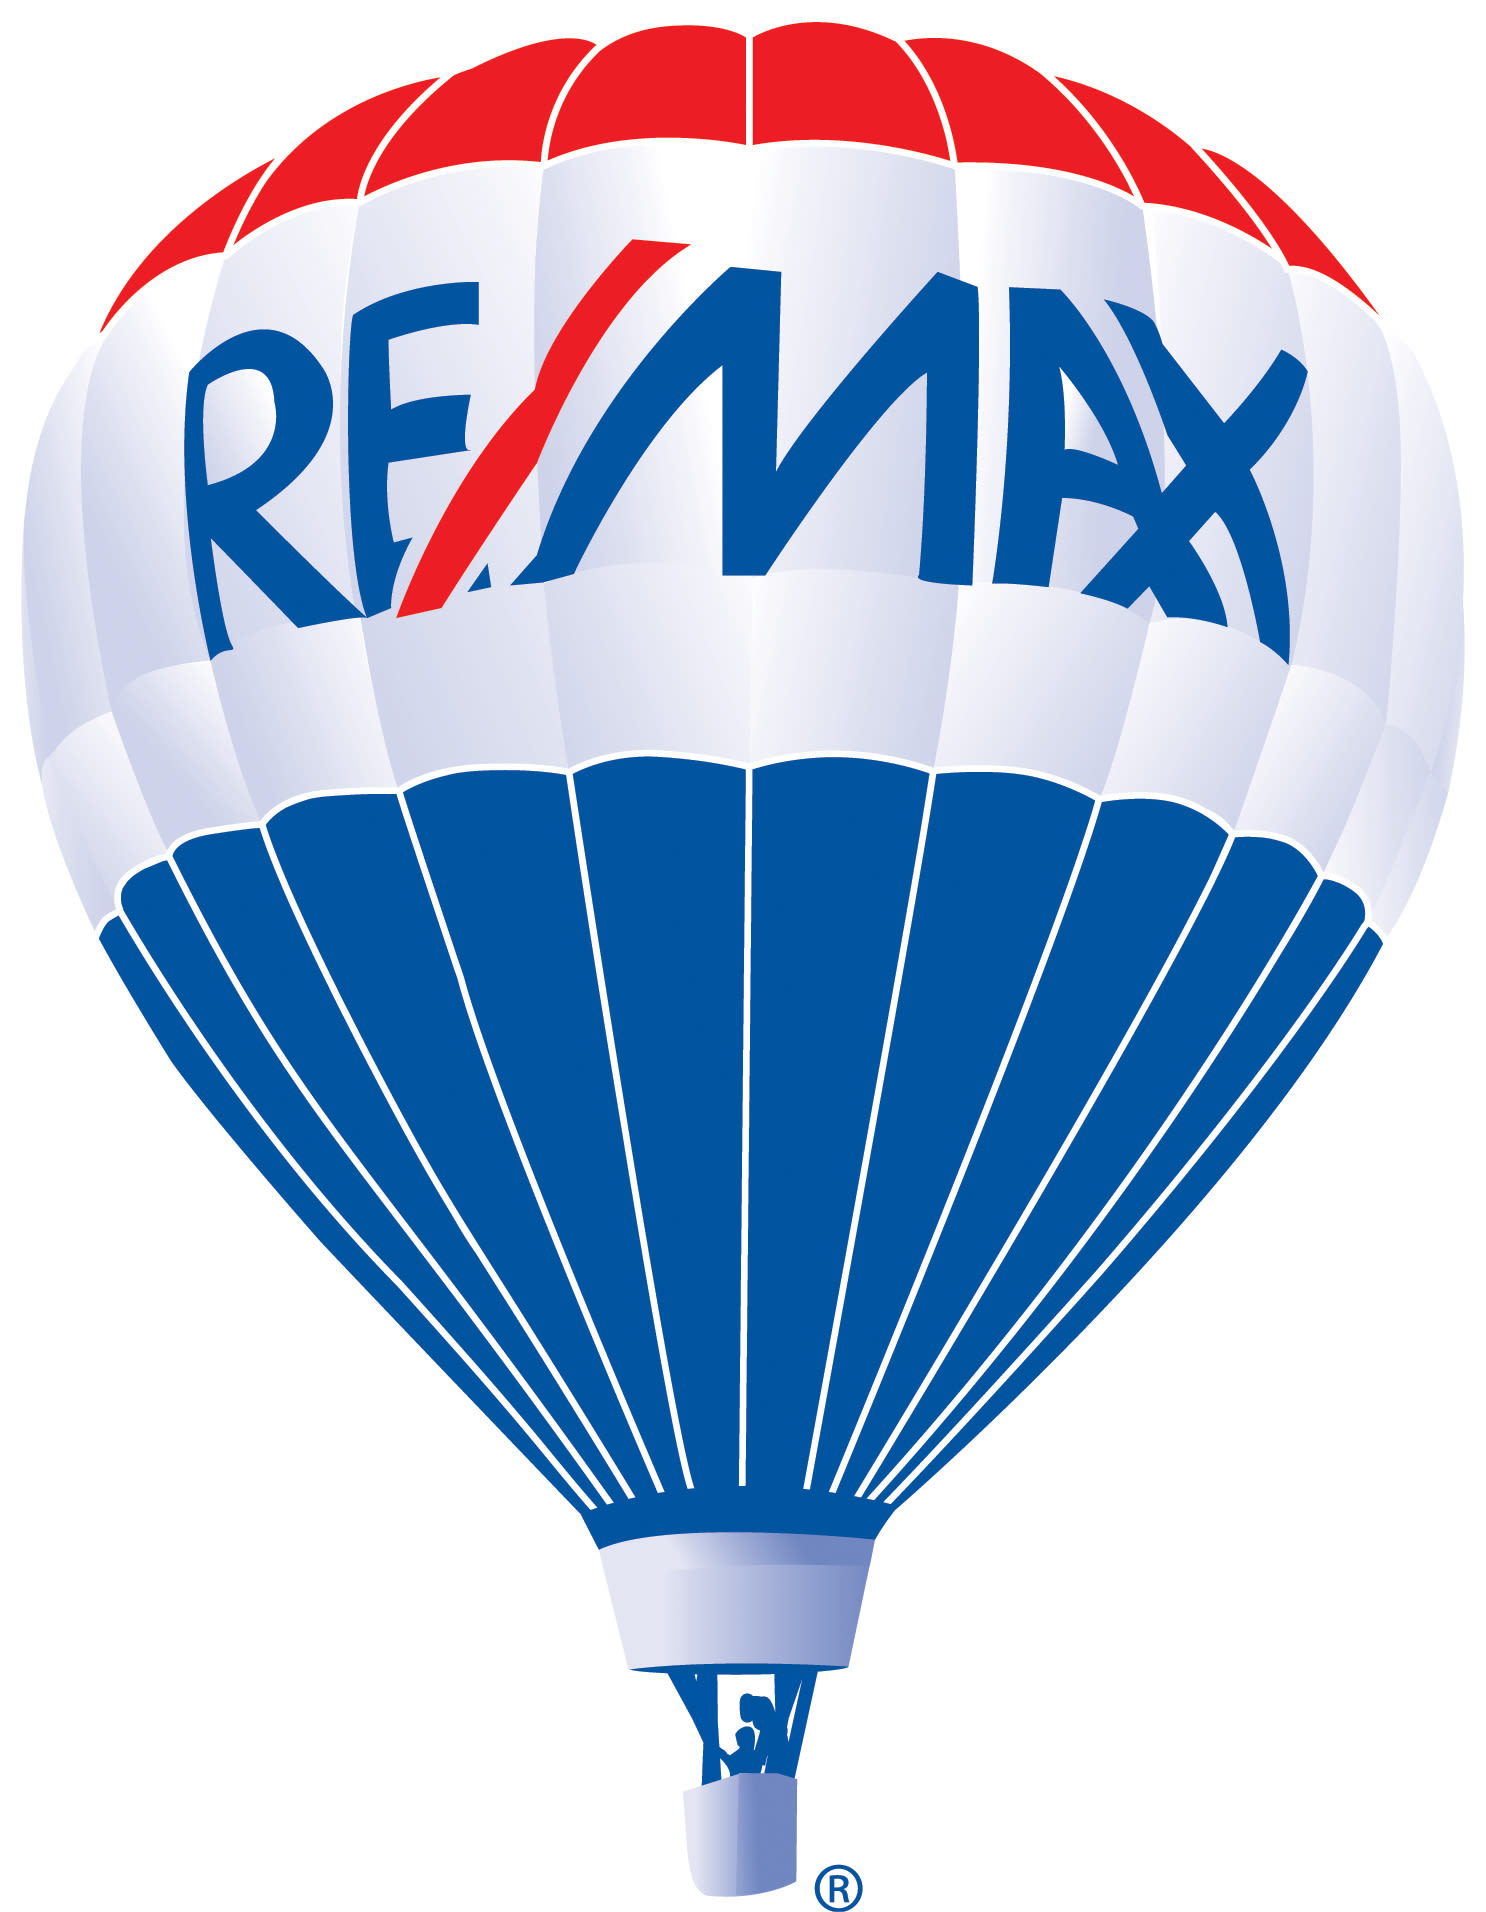 Joseph S Bird of Pakulla Professionals & RE/MAX Advantage Realty